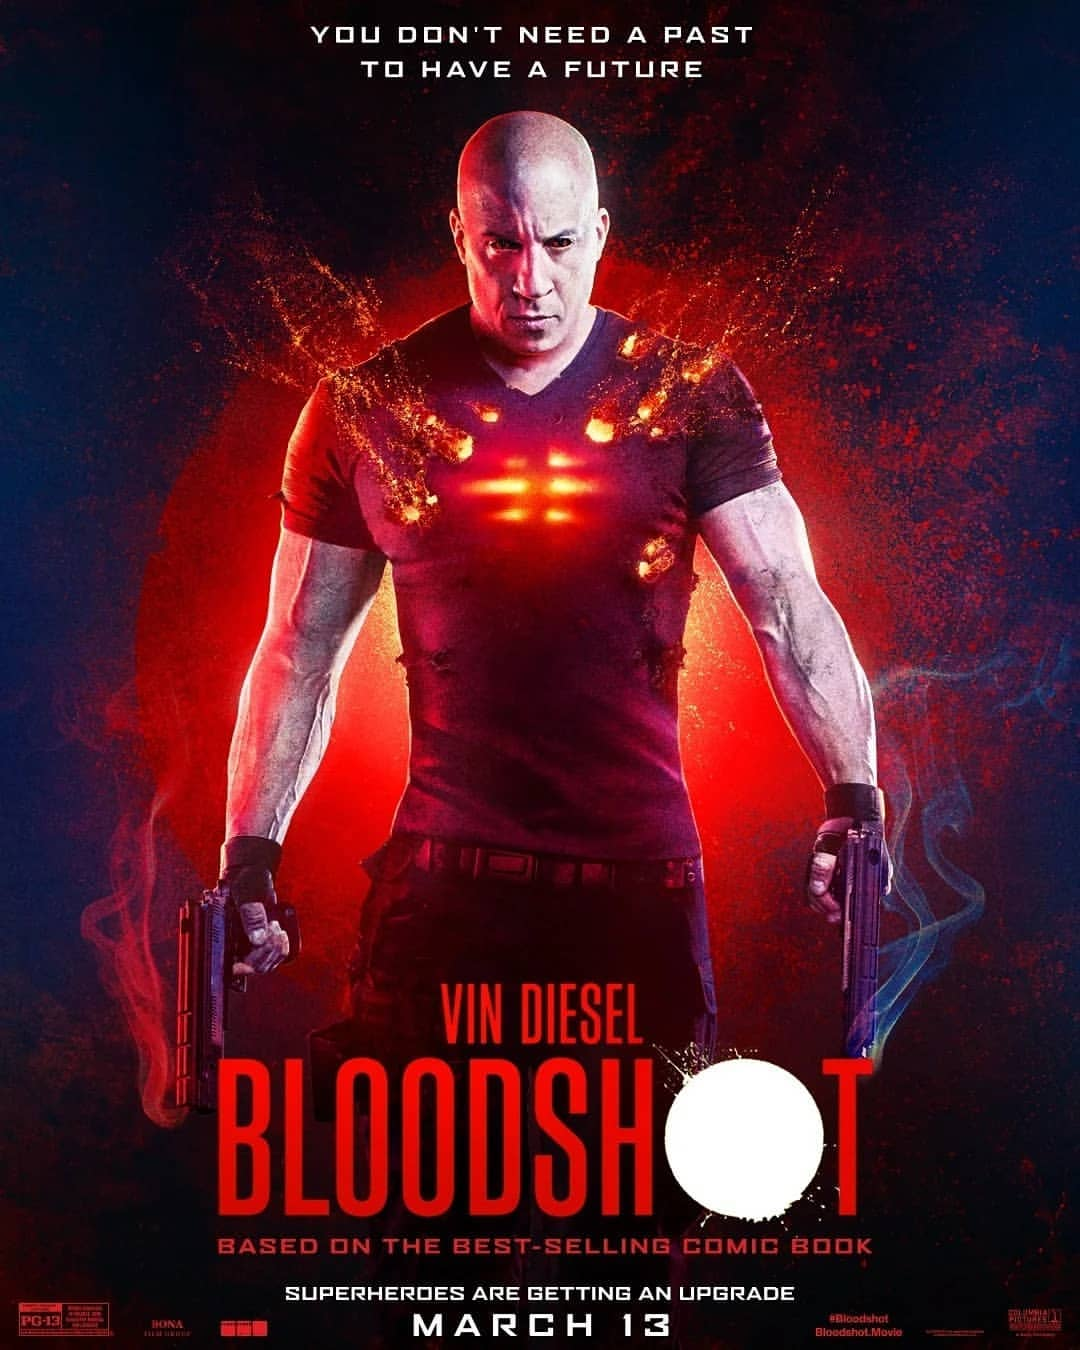 Bloodshot Movie Review : A thrilling leap of sci-fi imagination